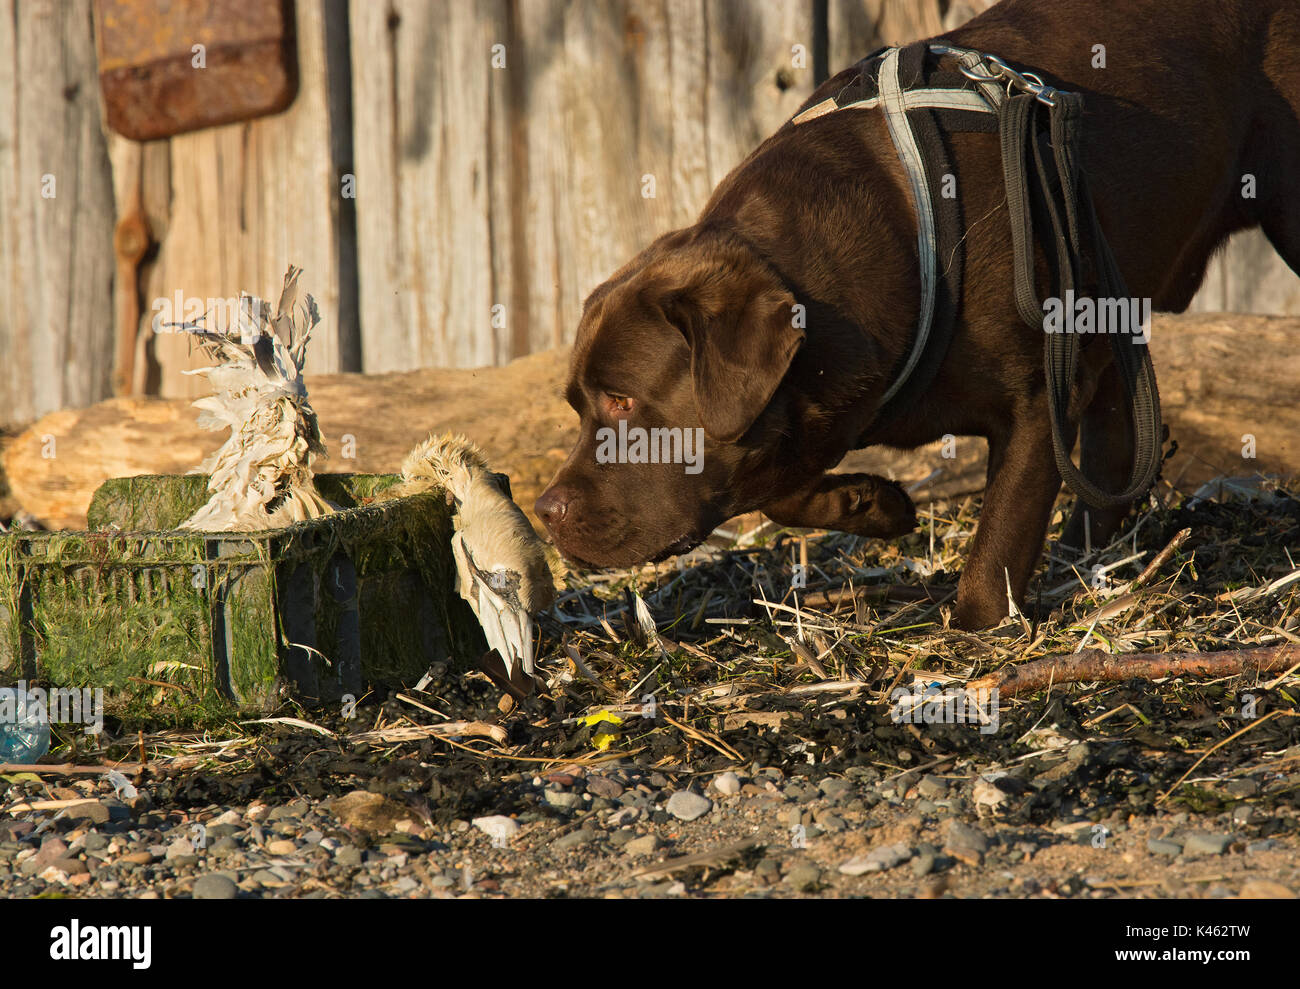 Dog inspecting a dead Gannet, Morus bassanus, washed up on beach in plastic crate, Lancashire, UK - Stock Image